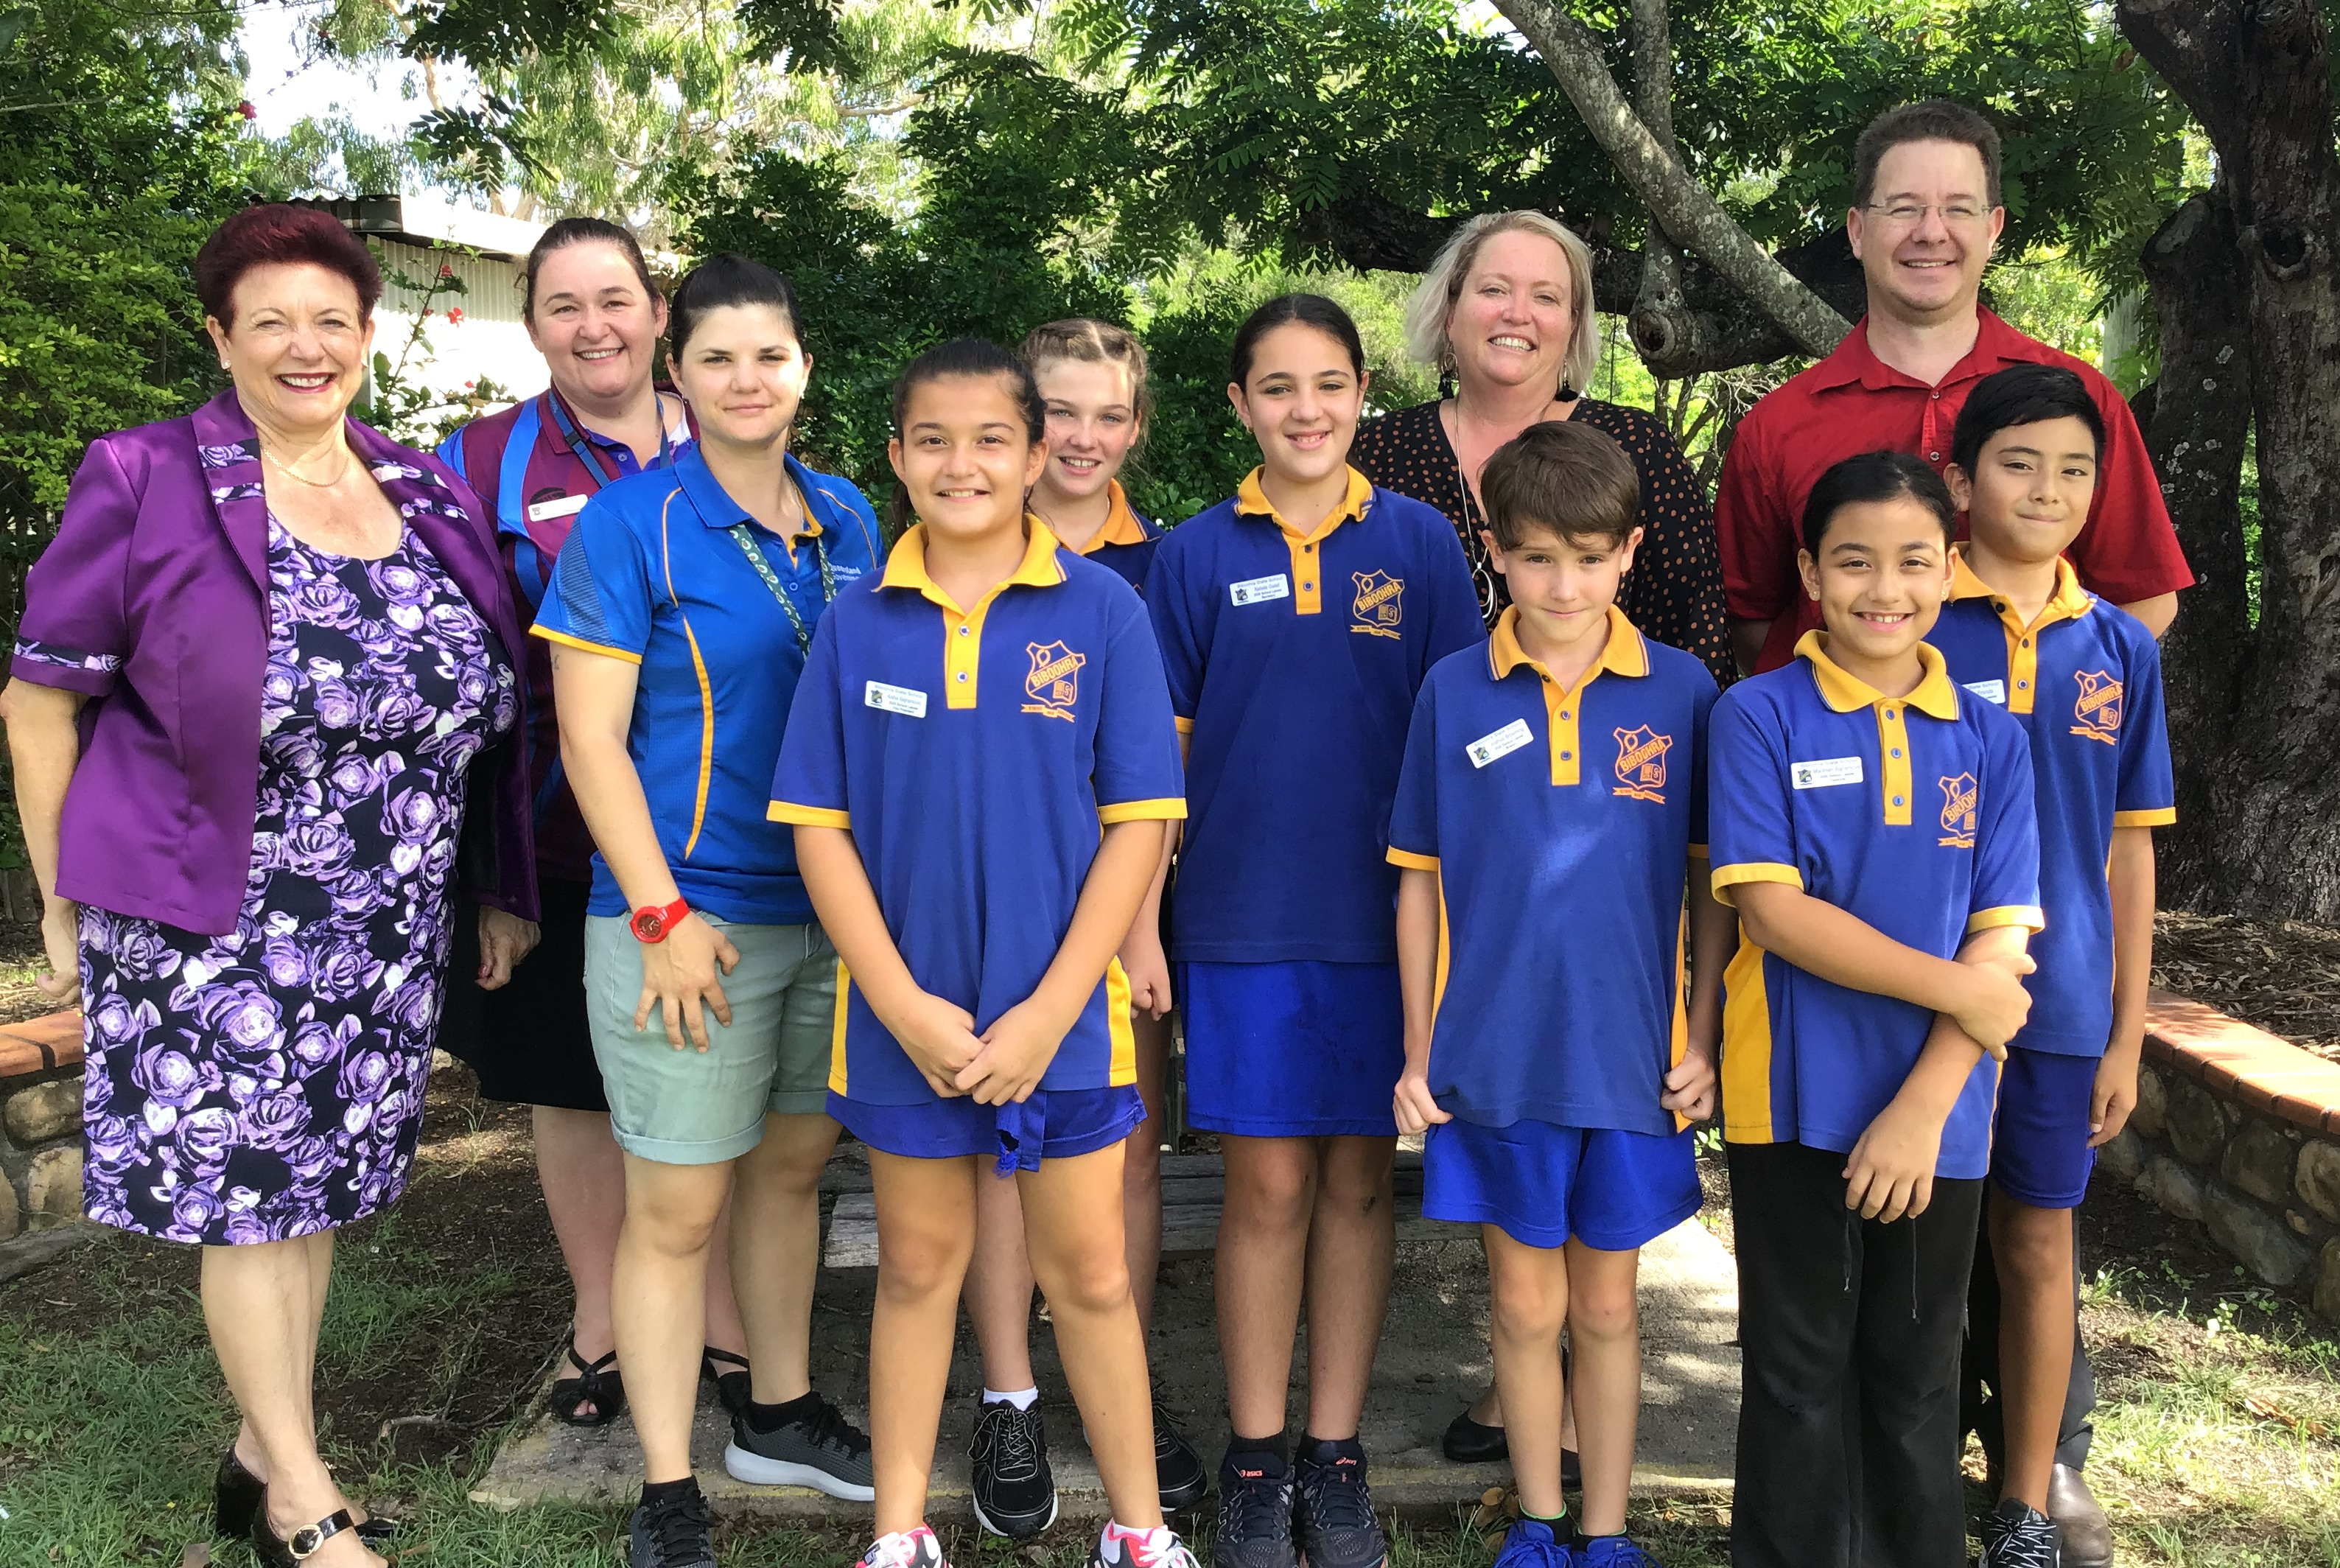 (L - R) The School Leaders 2020 for Biboohra State School are Cr. Angela Toppin, Lesa Pershouse, Year 6 teacher: Eleanor Silver, School Leader/Vice President: Aisha Bajramovic, School Leader/President: Alicia Holloway, School leader/Secretary: Natalia Galati, Cr. Lenore Wyatt, Bilwon Sports Leader: Joshua Browning, School Leader/Treasurer: Madinah Bajramovic, Kambul Sports Leader: Ivan Fronda, and School PrincipalDavid King  View The School